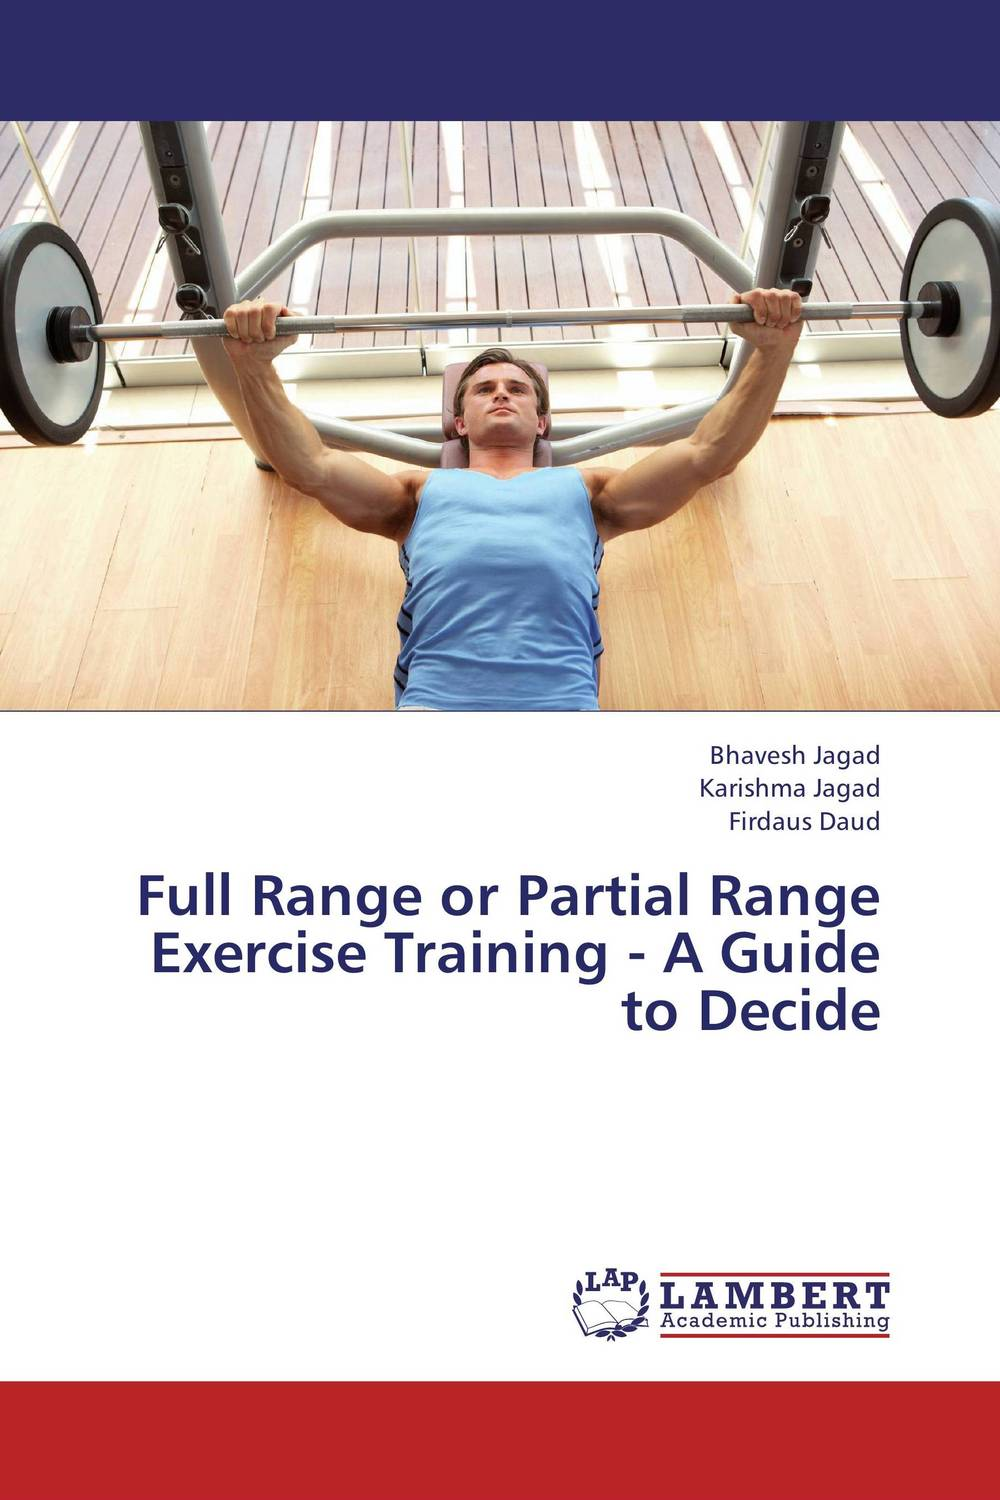 Full Range or Partial Range Exercise Training - A Guide to Decide стоимость